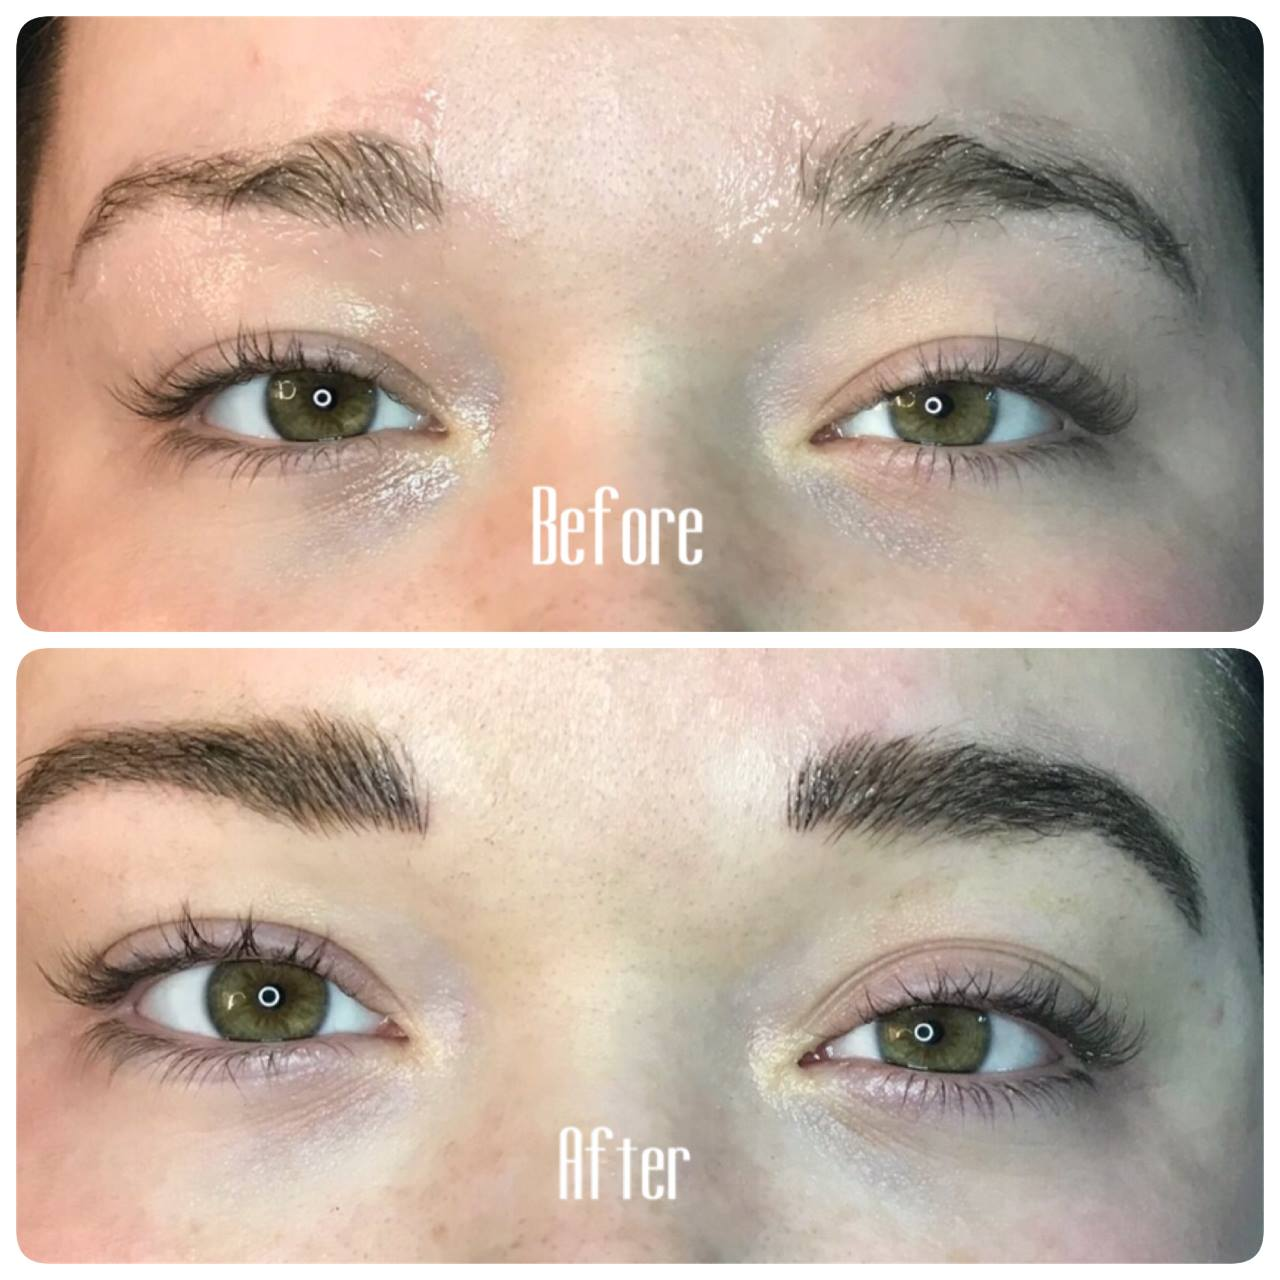 Microblading and shadding at bodyrx louisville